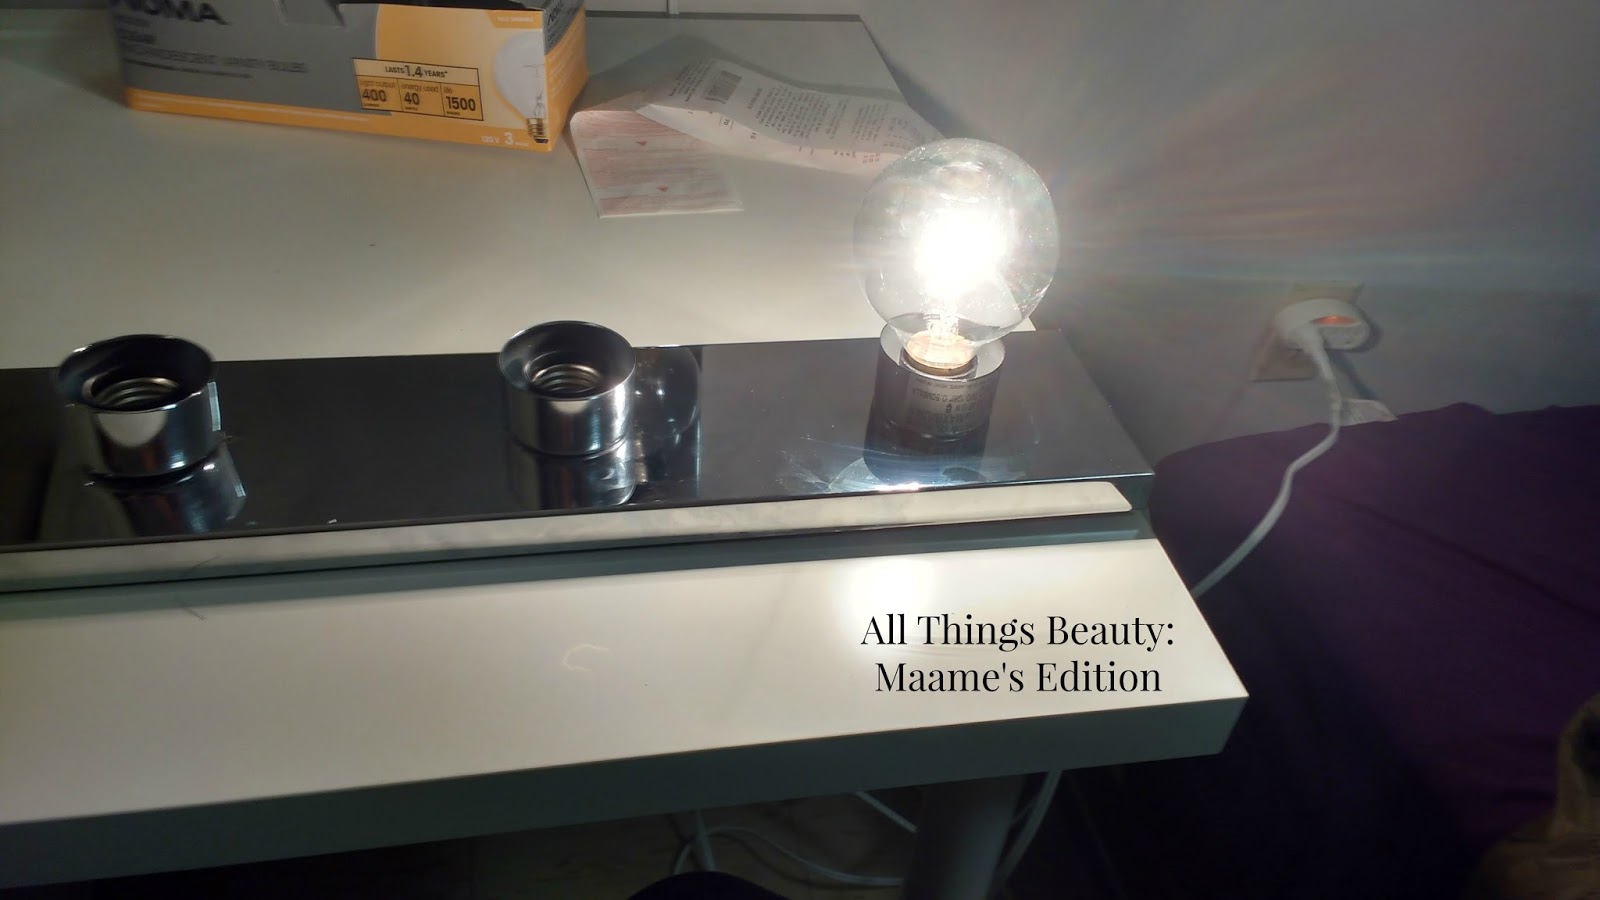 MAKEUP STORAGE DIY MAKEUP VANITY TABLE WITH LIGHTS FOR UNDER USD 200 - All Things Beauty: Maame s ...